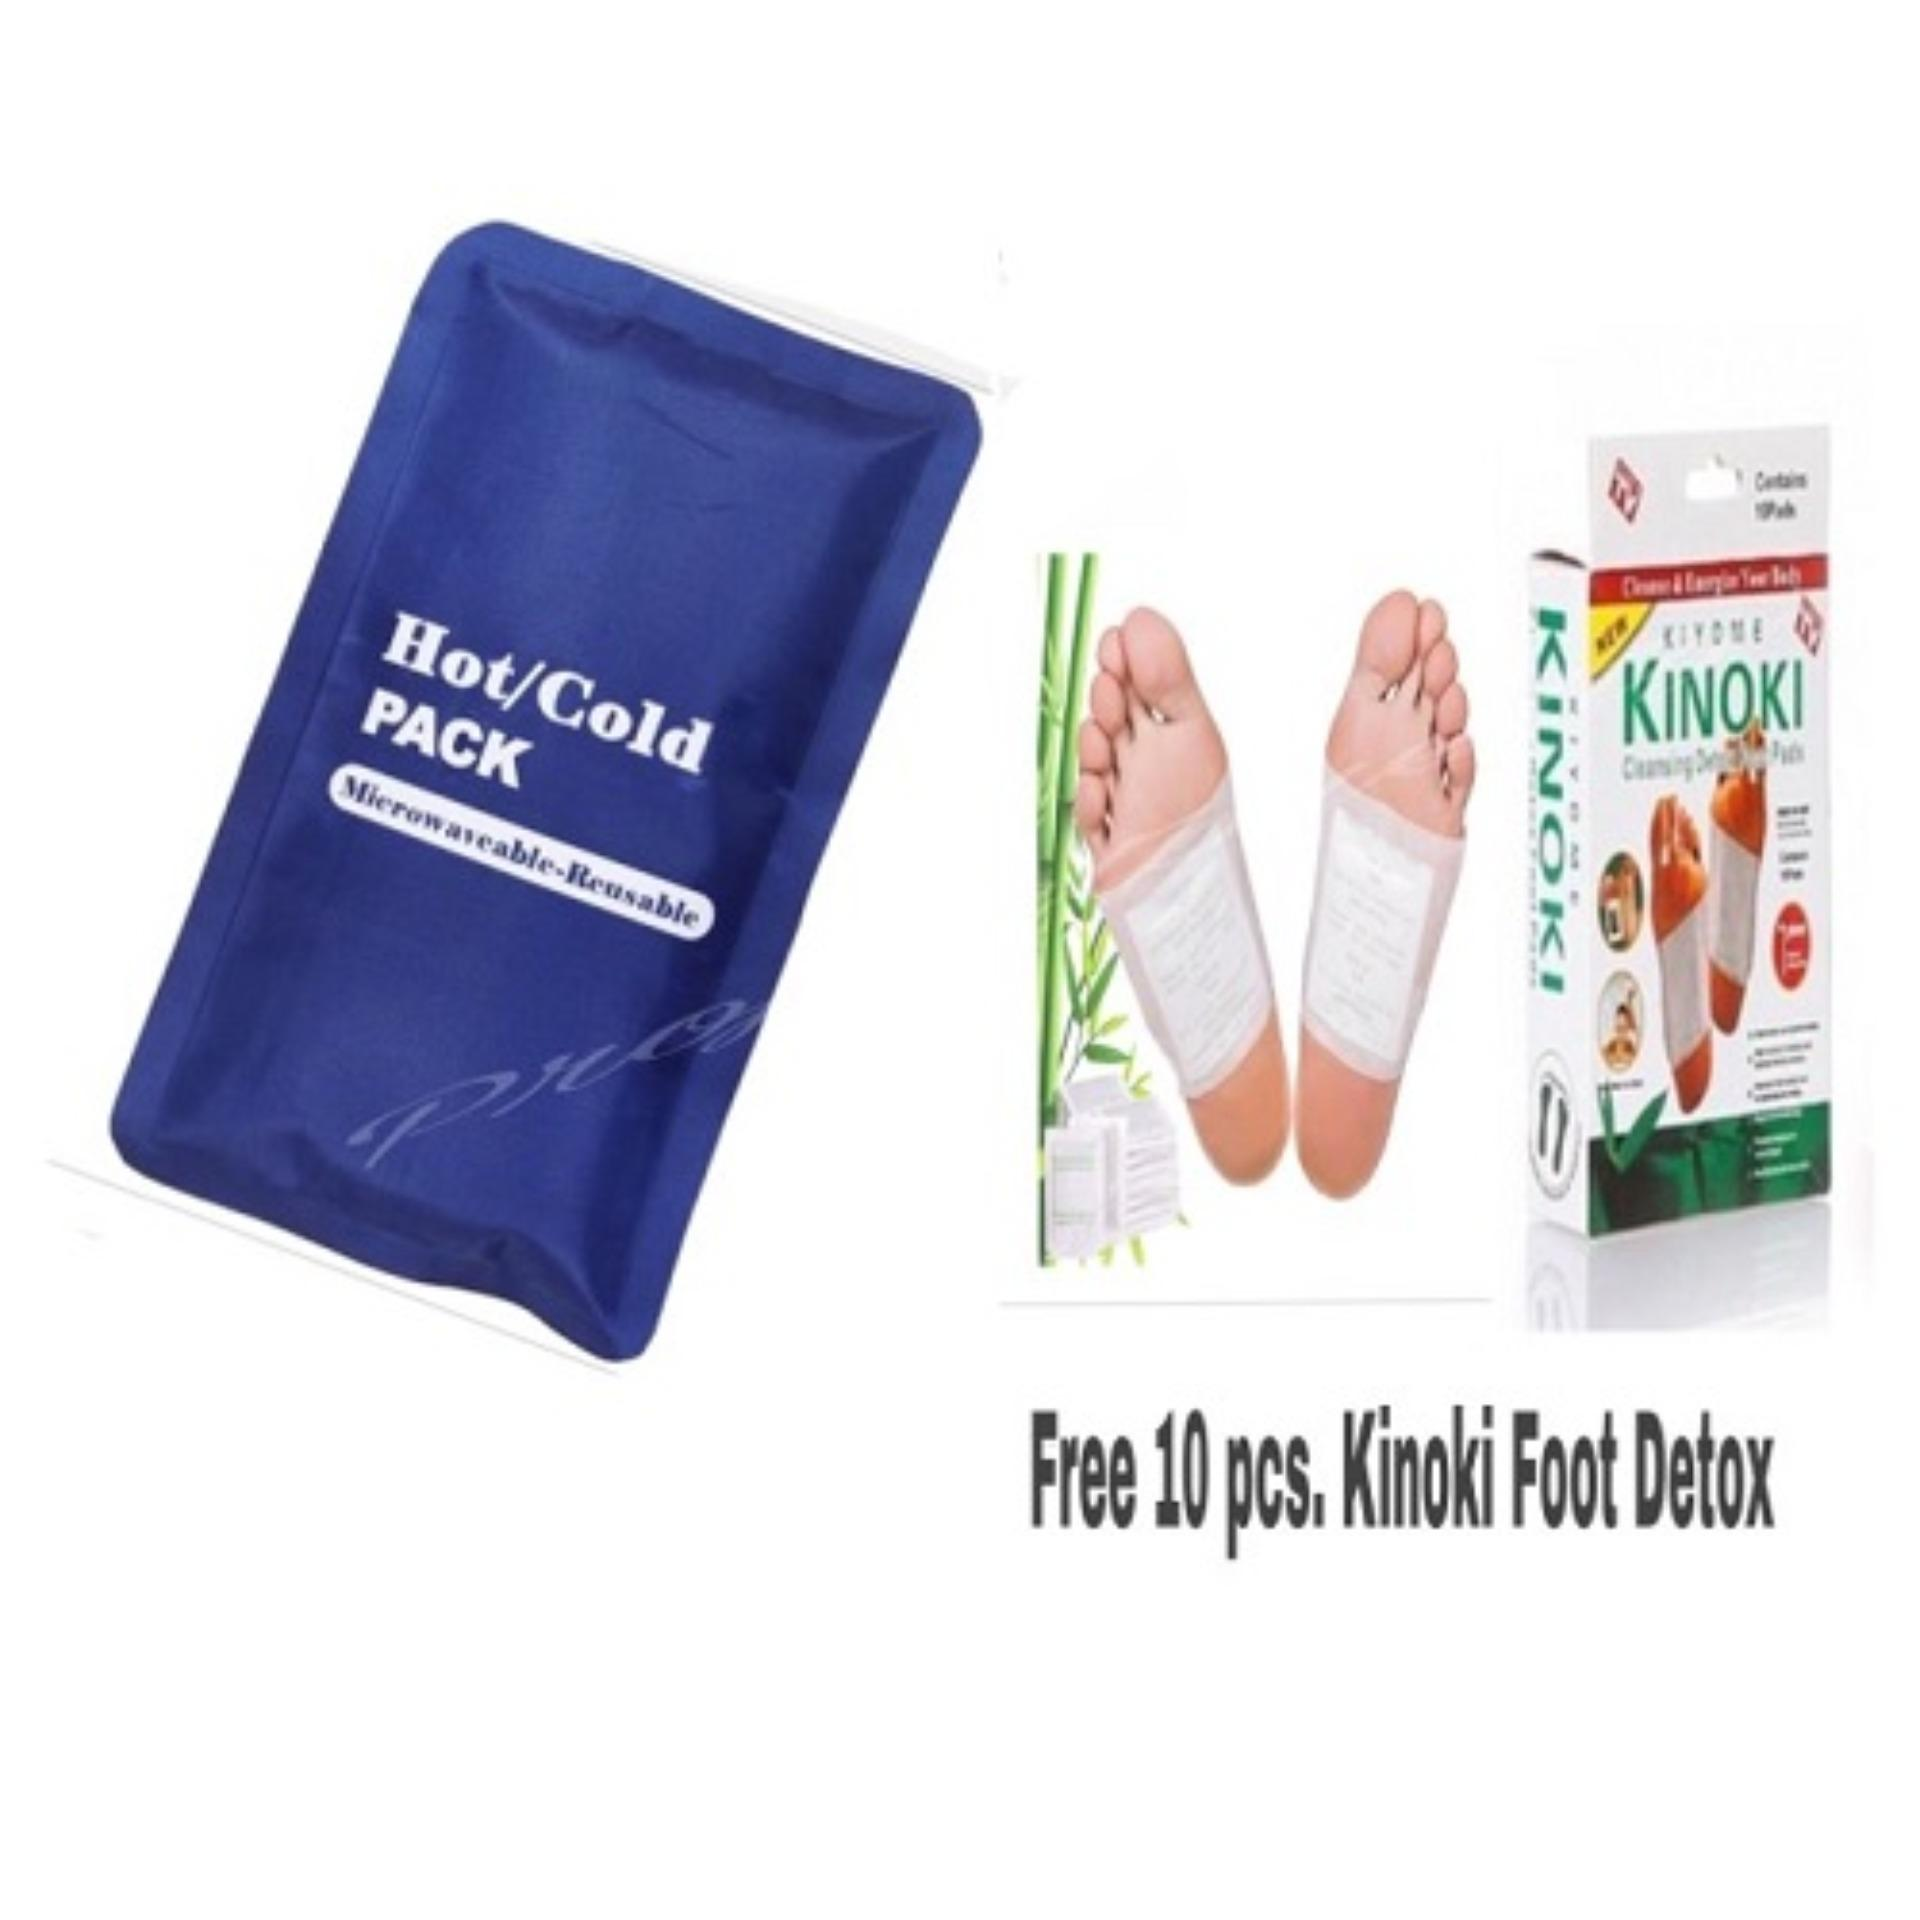 Buy Sell Cheapest Bih Kinoki 10 Best Quality Product Deals Gold Per Box Hot And Cold Reusable Compress Bag Free Pads Foot Detox